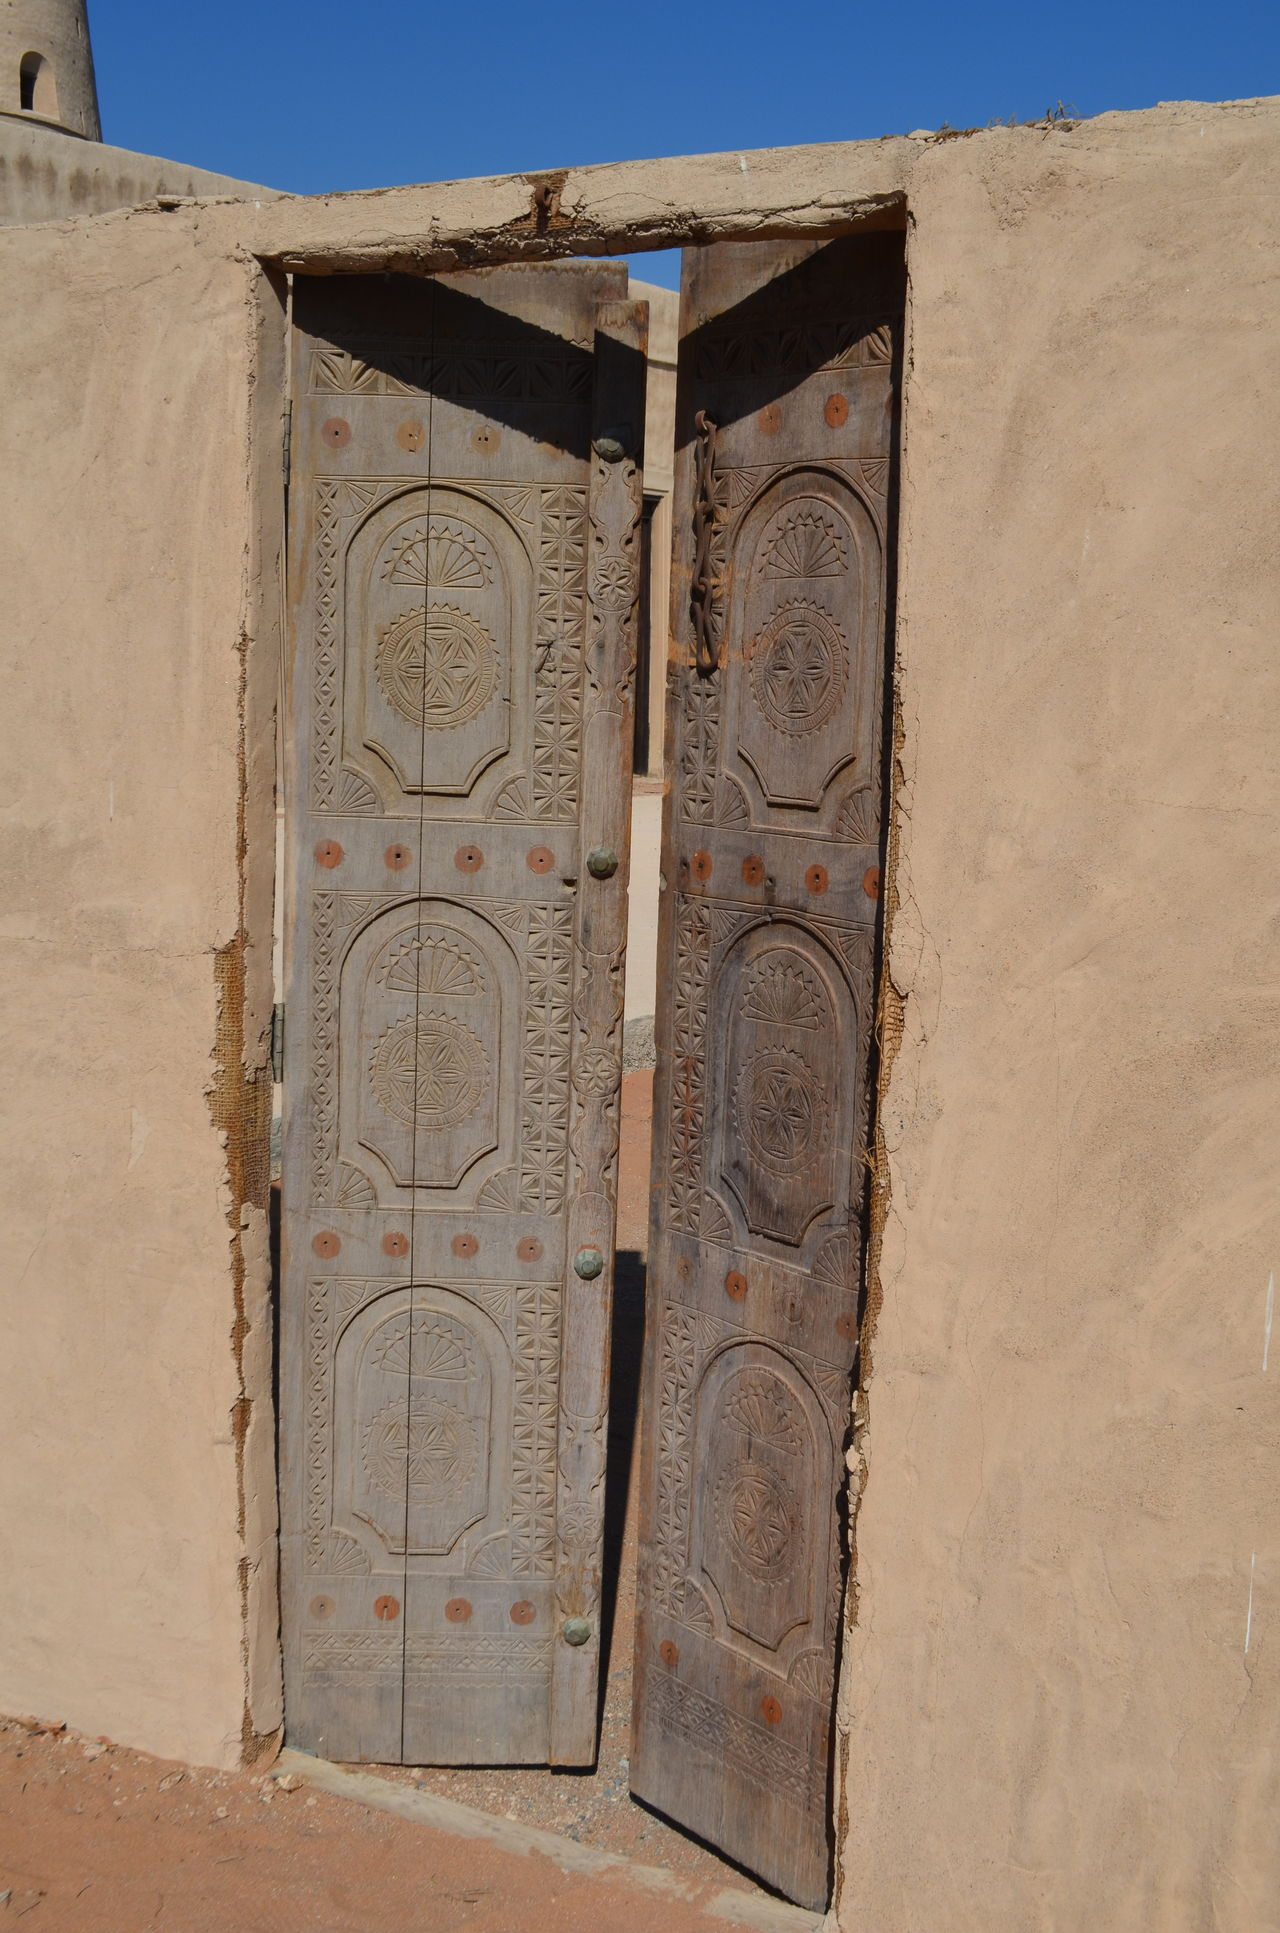 Fujairah Fort Abandoned Architecture Building Exterior Built Structure Carving Day Desolate Detail Details Door Fort Fujairah Historical Building History Lonely No People Outdoors UAE United Arab Emirates Wood